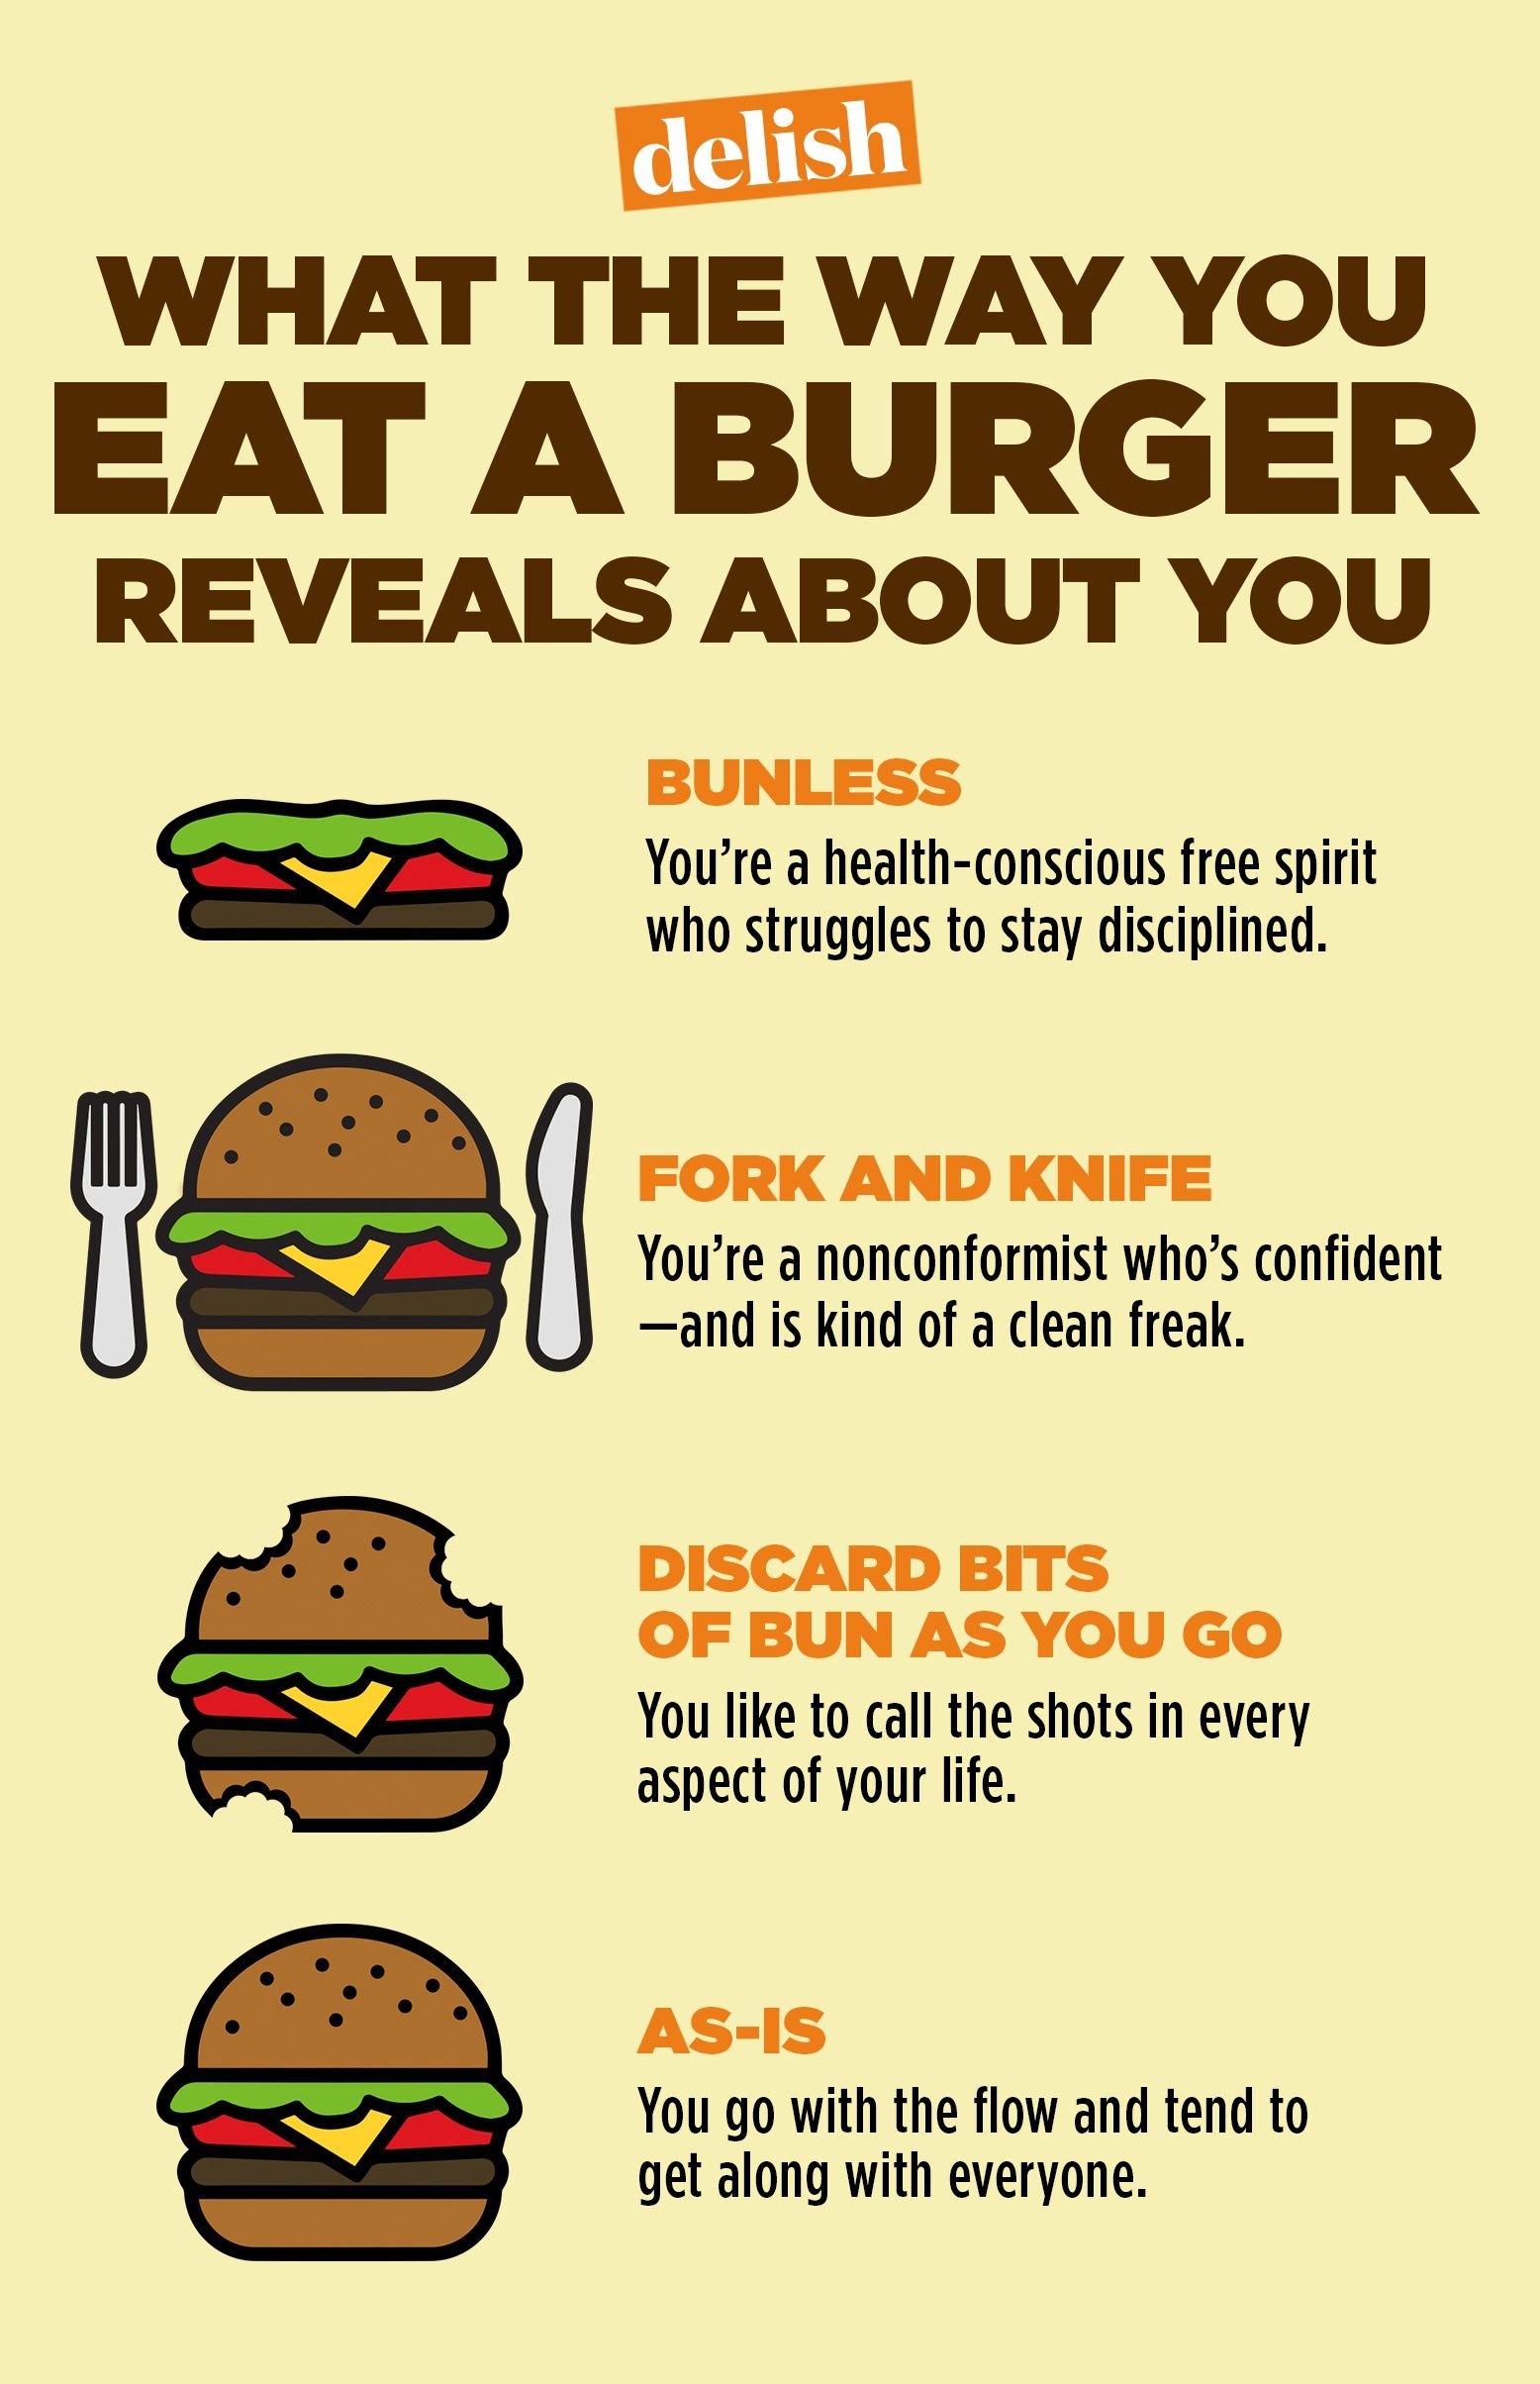 How You Eat A Burger Actually Reveals A Lot About Your Personality Burger Eat Personality